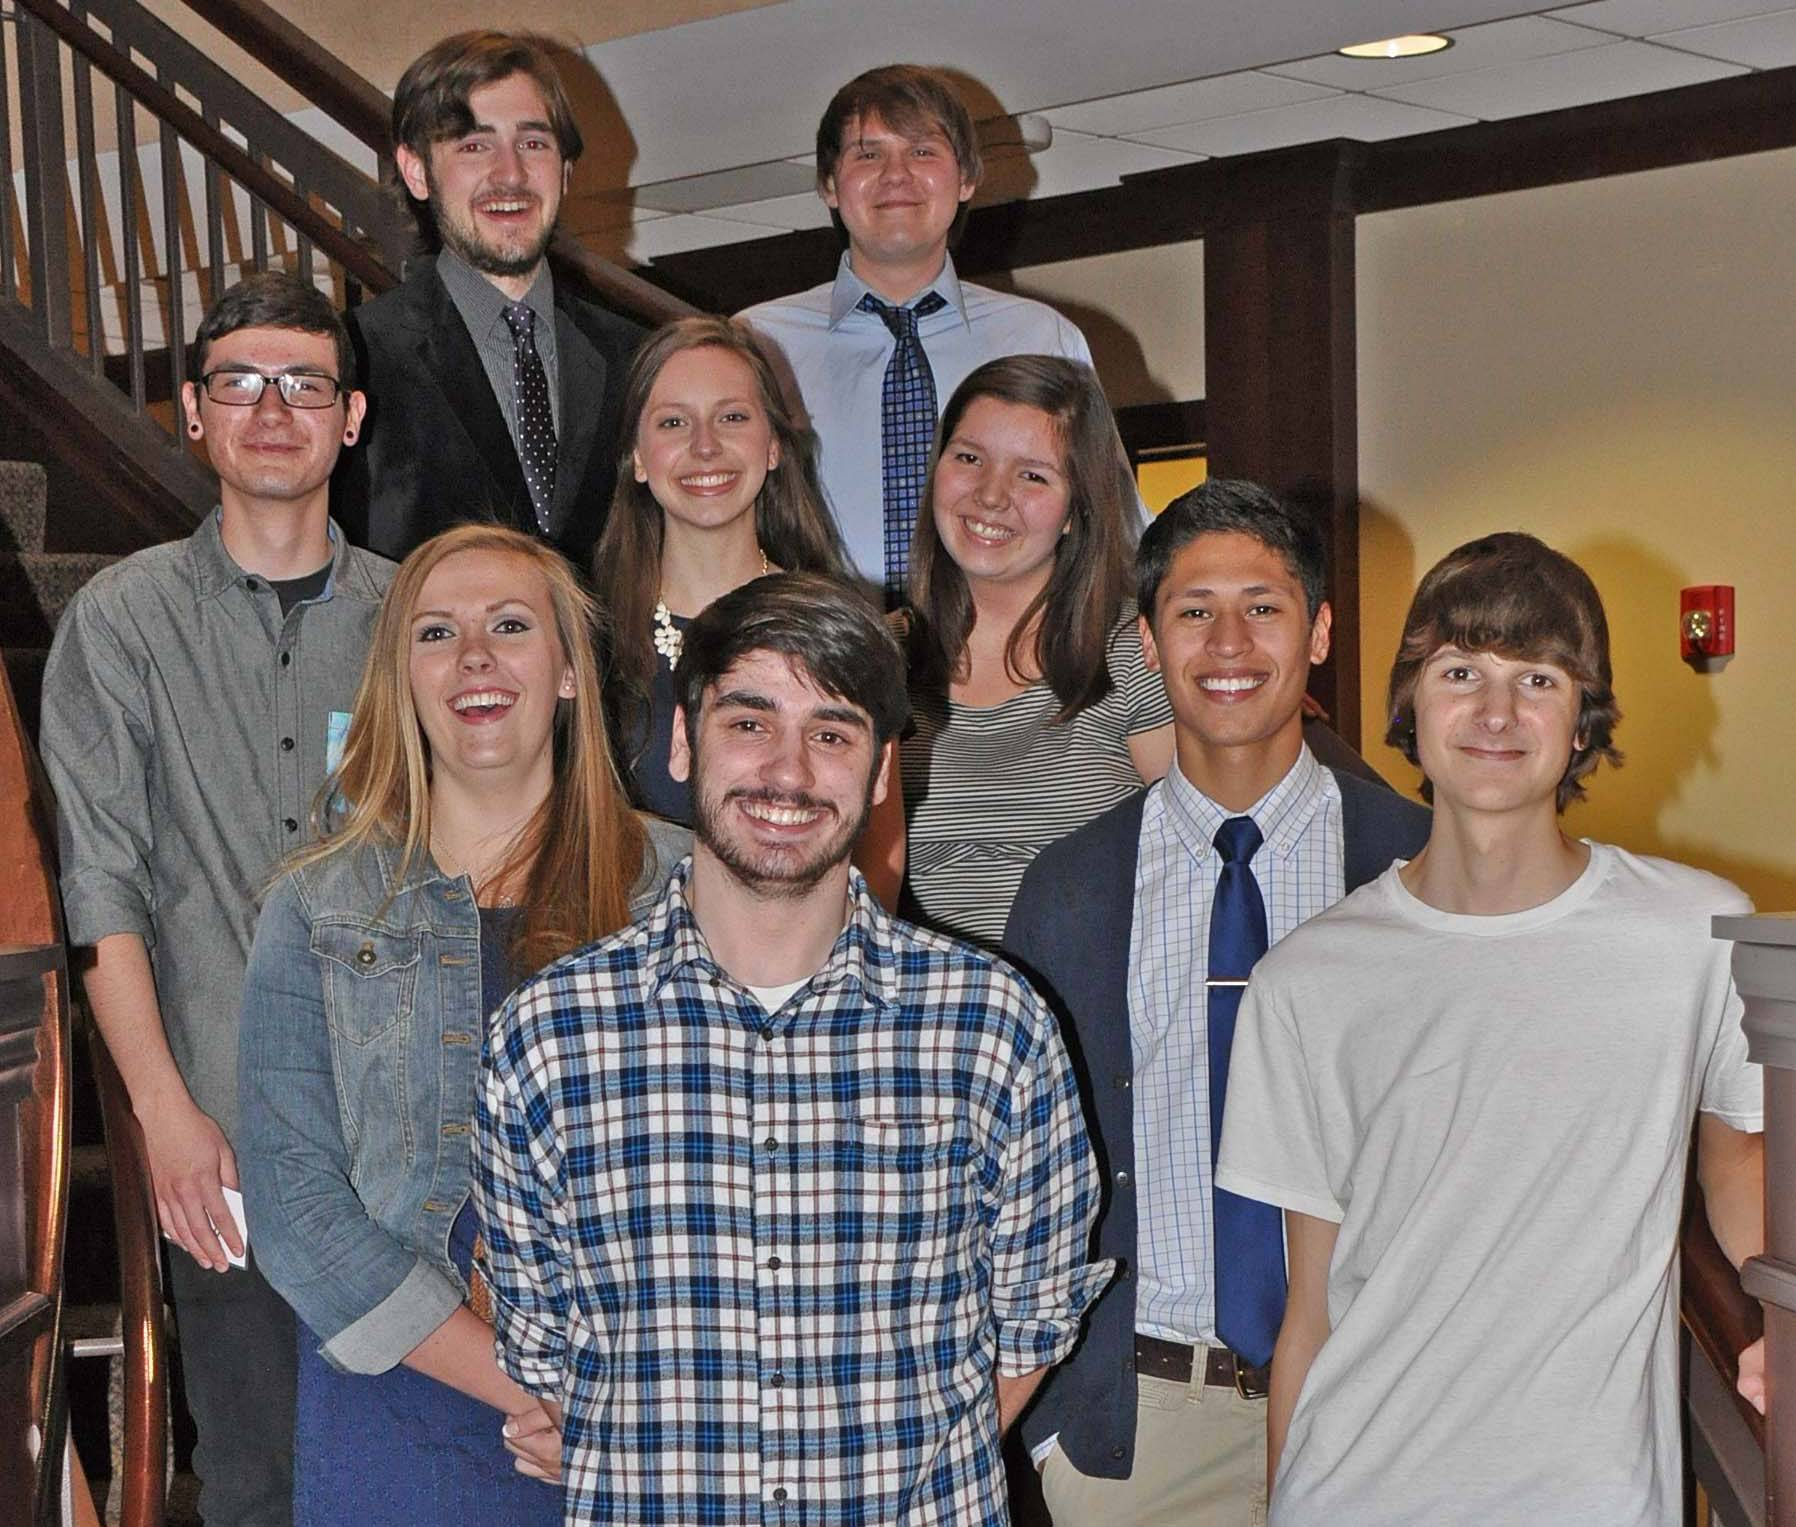 Holmstad residents awarded $9,000 in college scholarships to dining services employees: first row, from left, Joseph Doyle and Mitchell Kavalec; 2nd row, Francisco Gama, Delaney Corbitt, Stephanie Condon; 3rd row, Alice Paul, Gabriel Monarrez; and back row, Jeffrey Heise and Benjamin Borowiak.